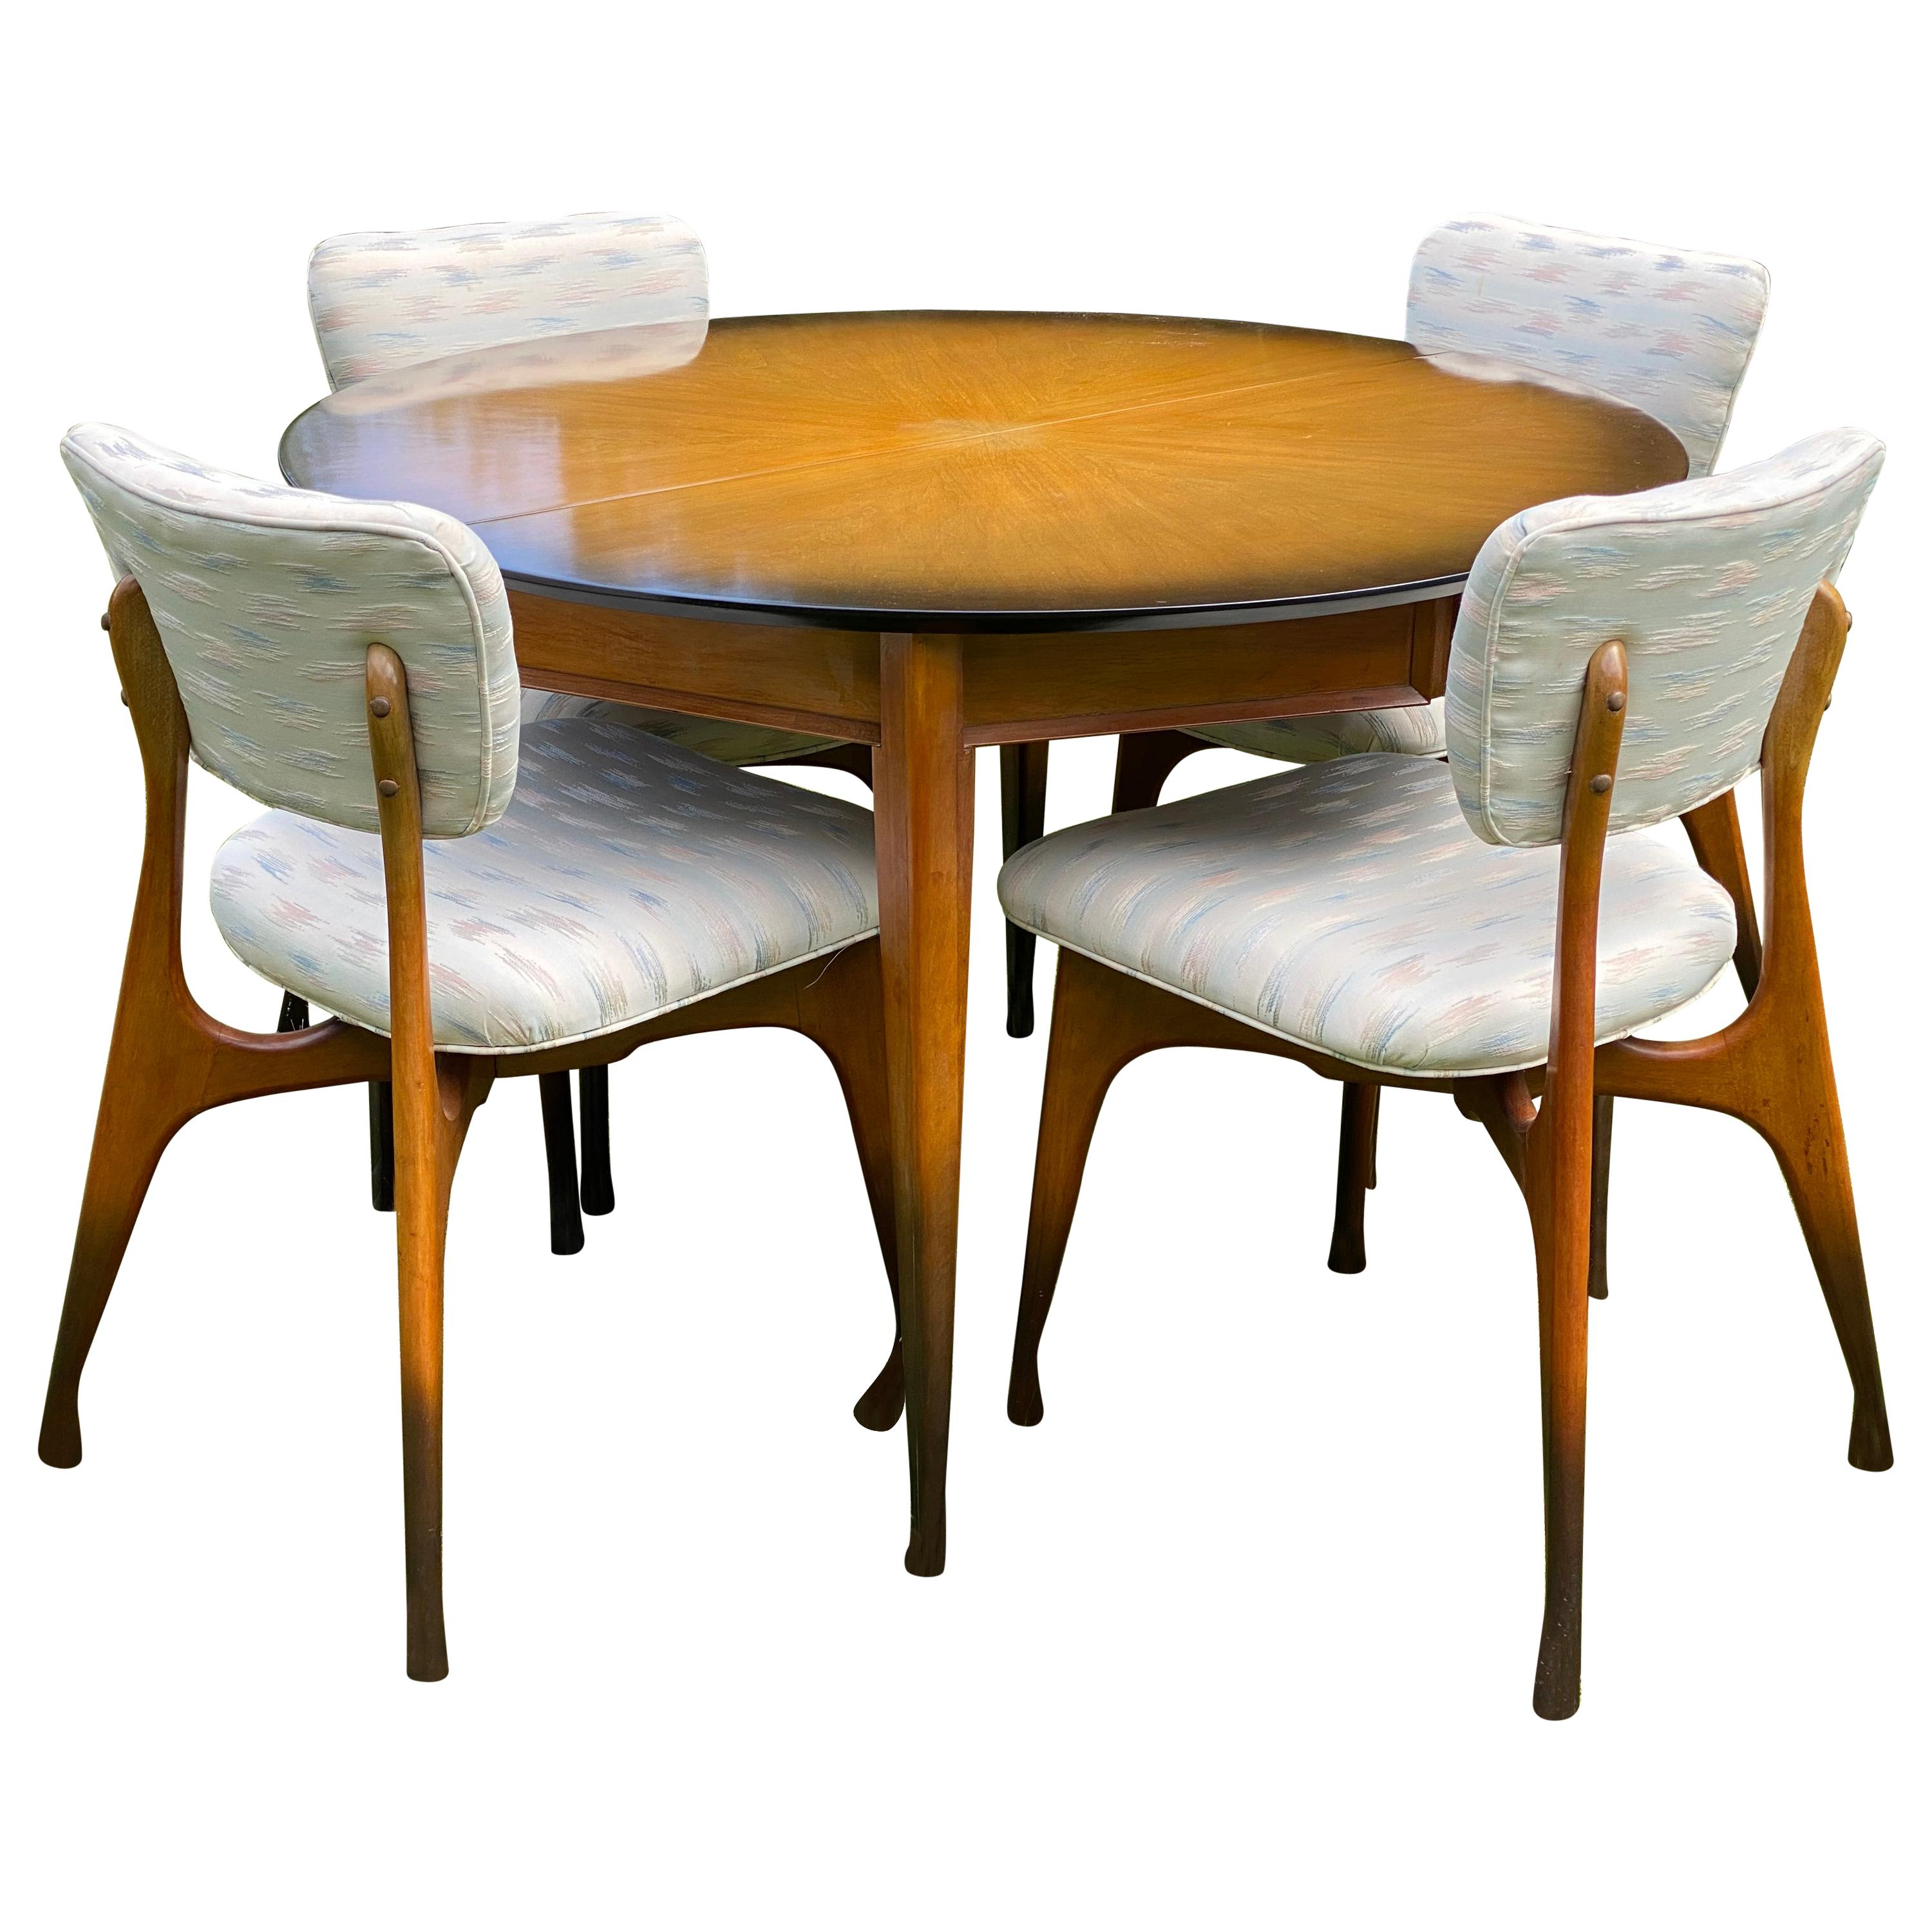 1960s Sunburst Finish Dining Table and Chairs